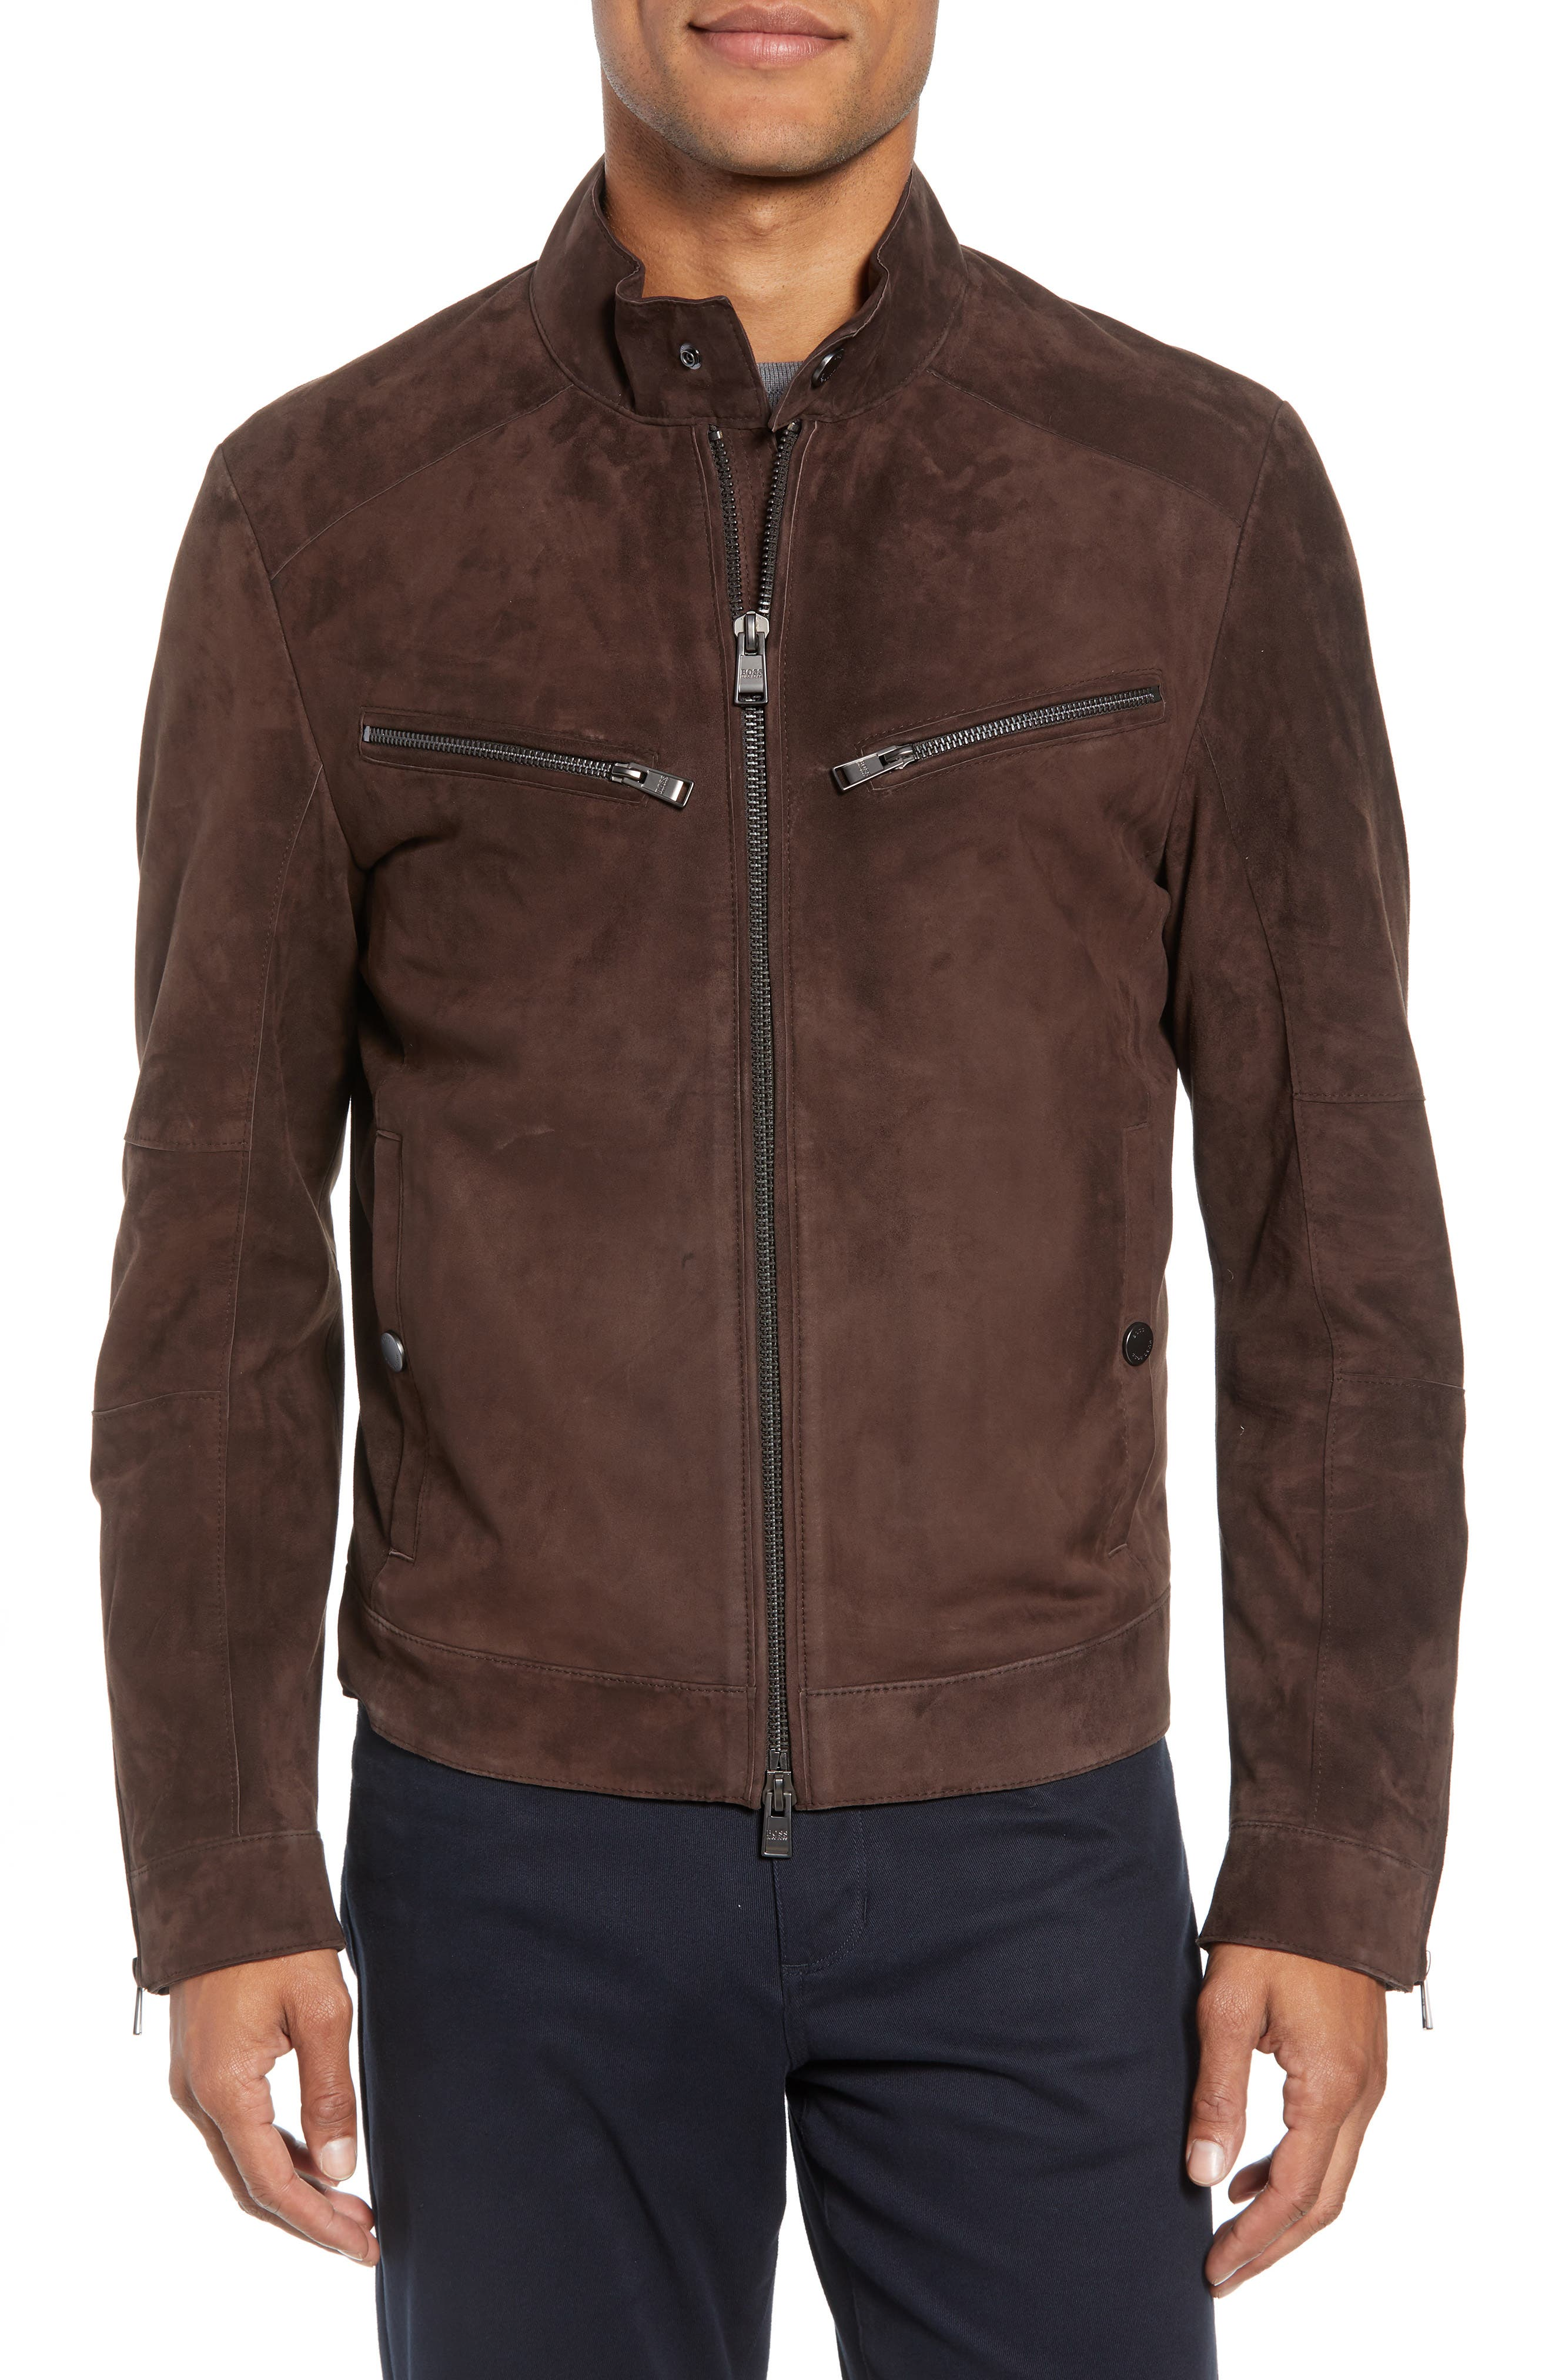 T-Nalok Suede Jacket,                             Alternate thumbnail 4, color,                             202